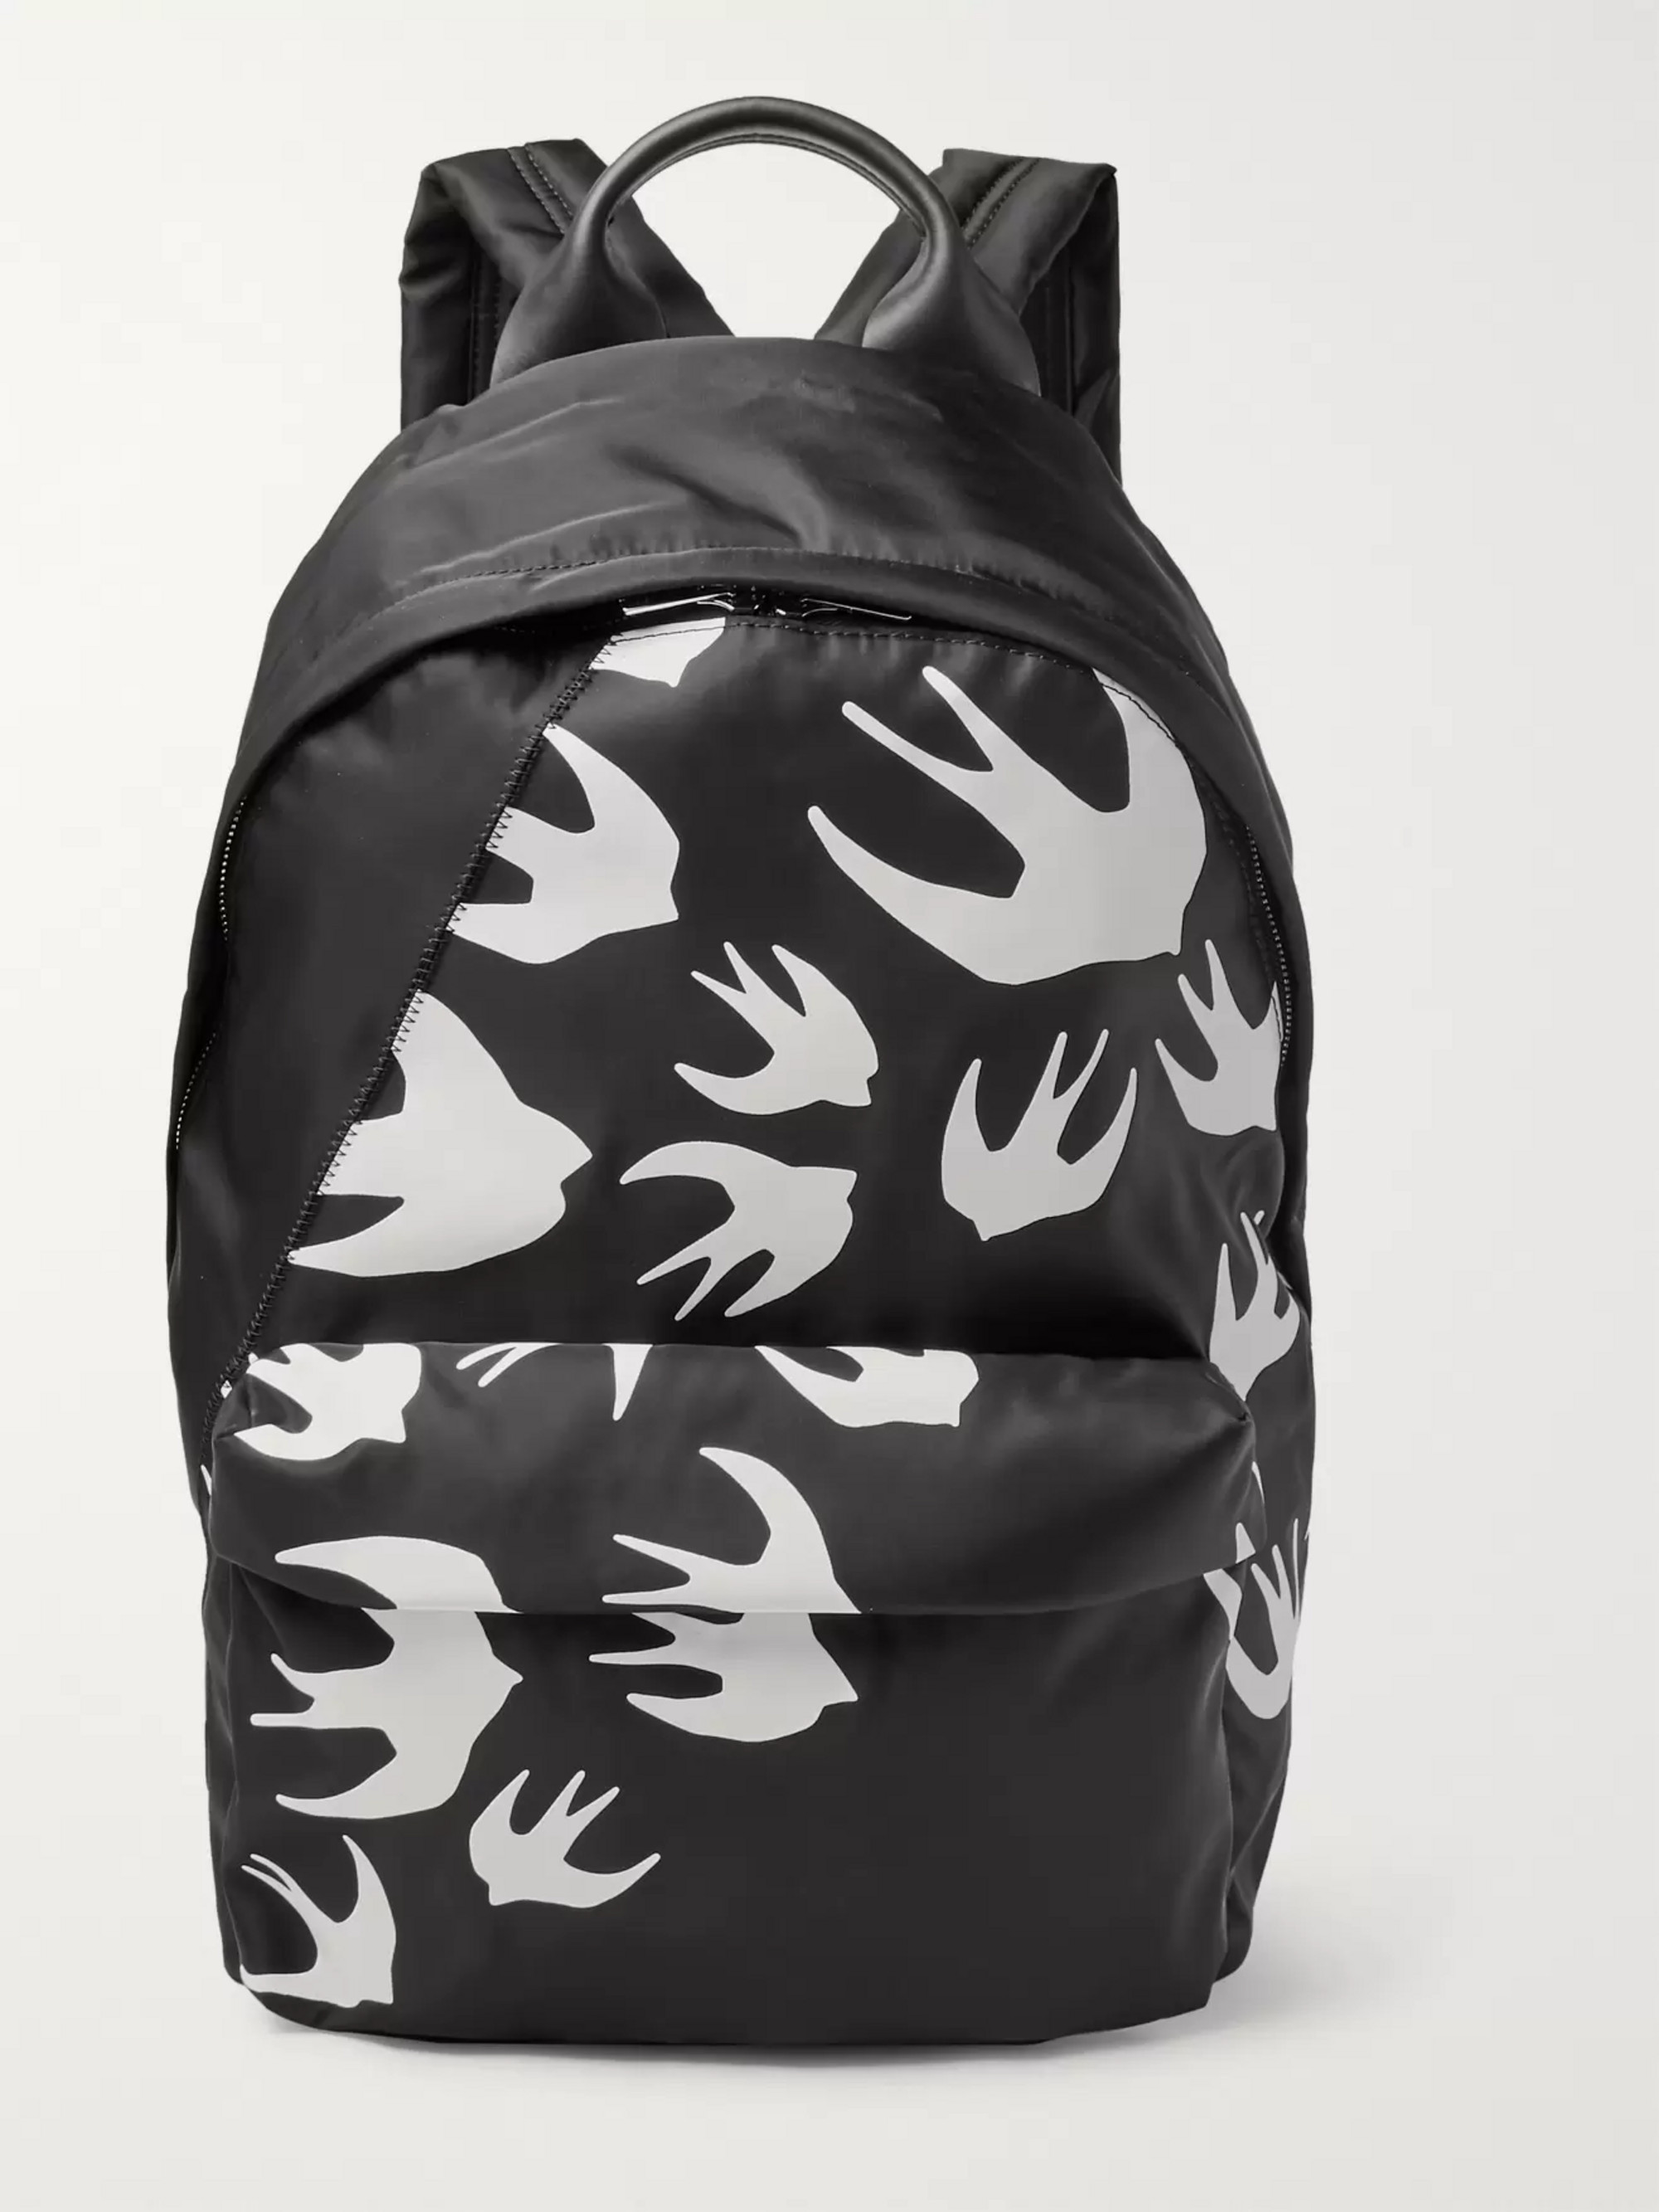 McQ Alexander McQueen Leather-Trimmed Printed Shell Backpack